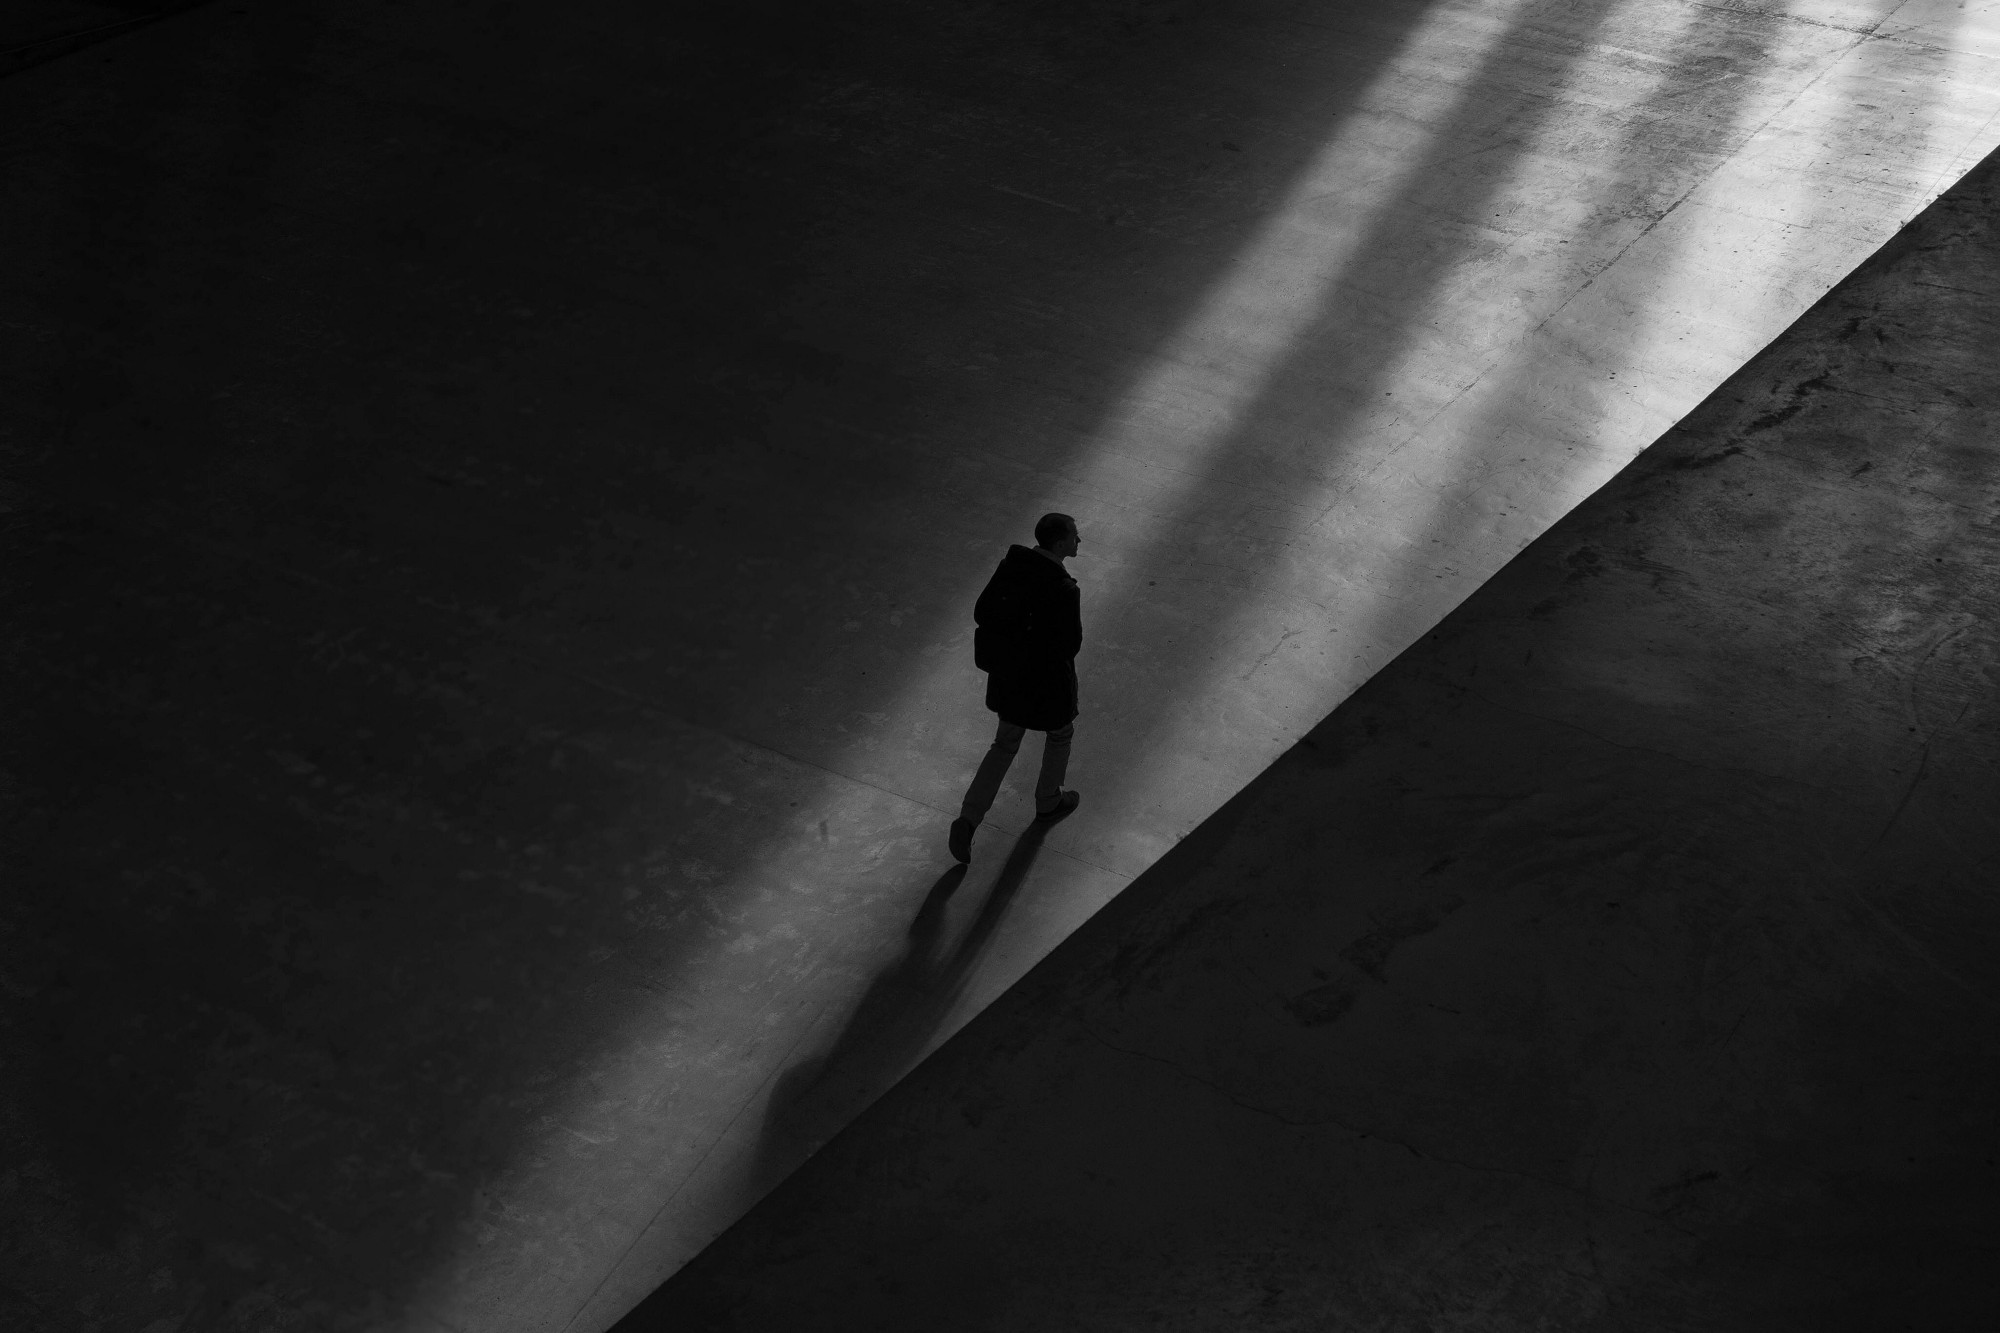 Every light cast a shadow: Identifying Design Opportunities